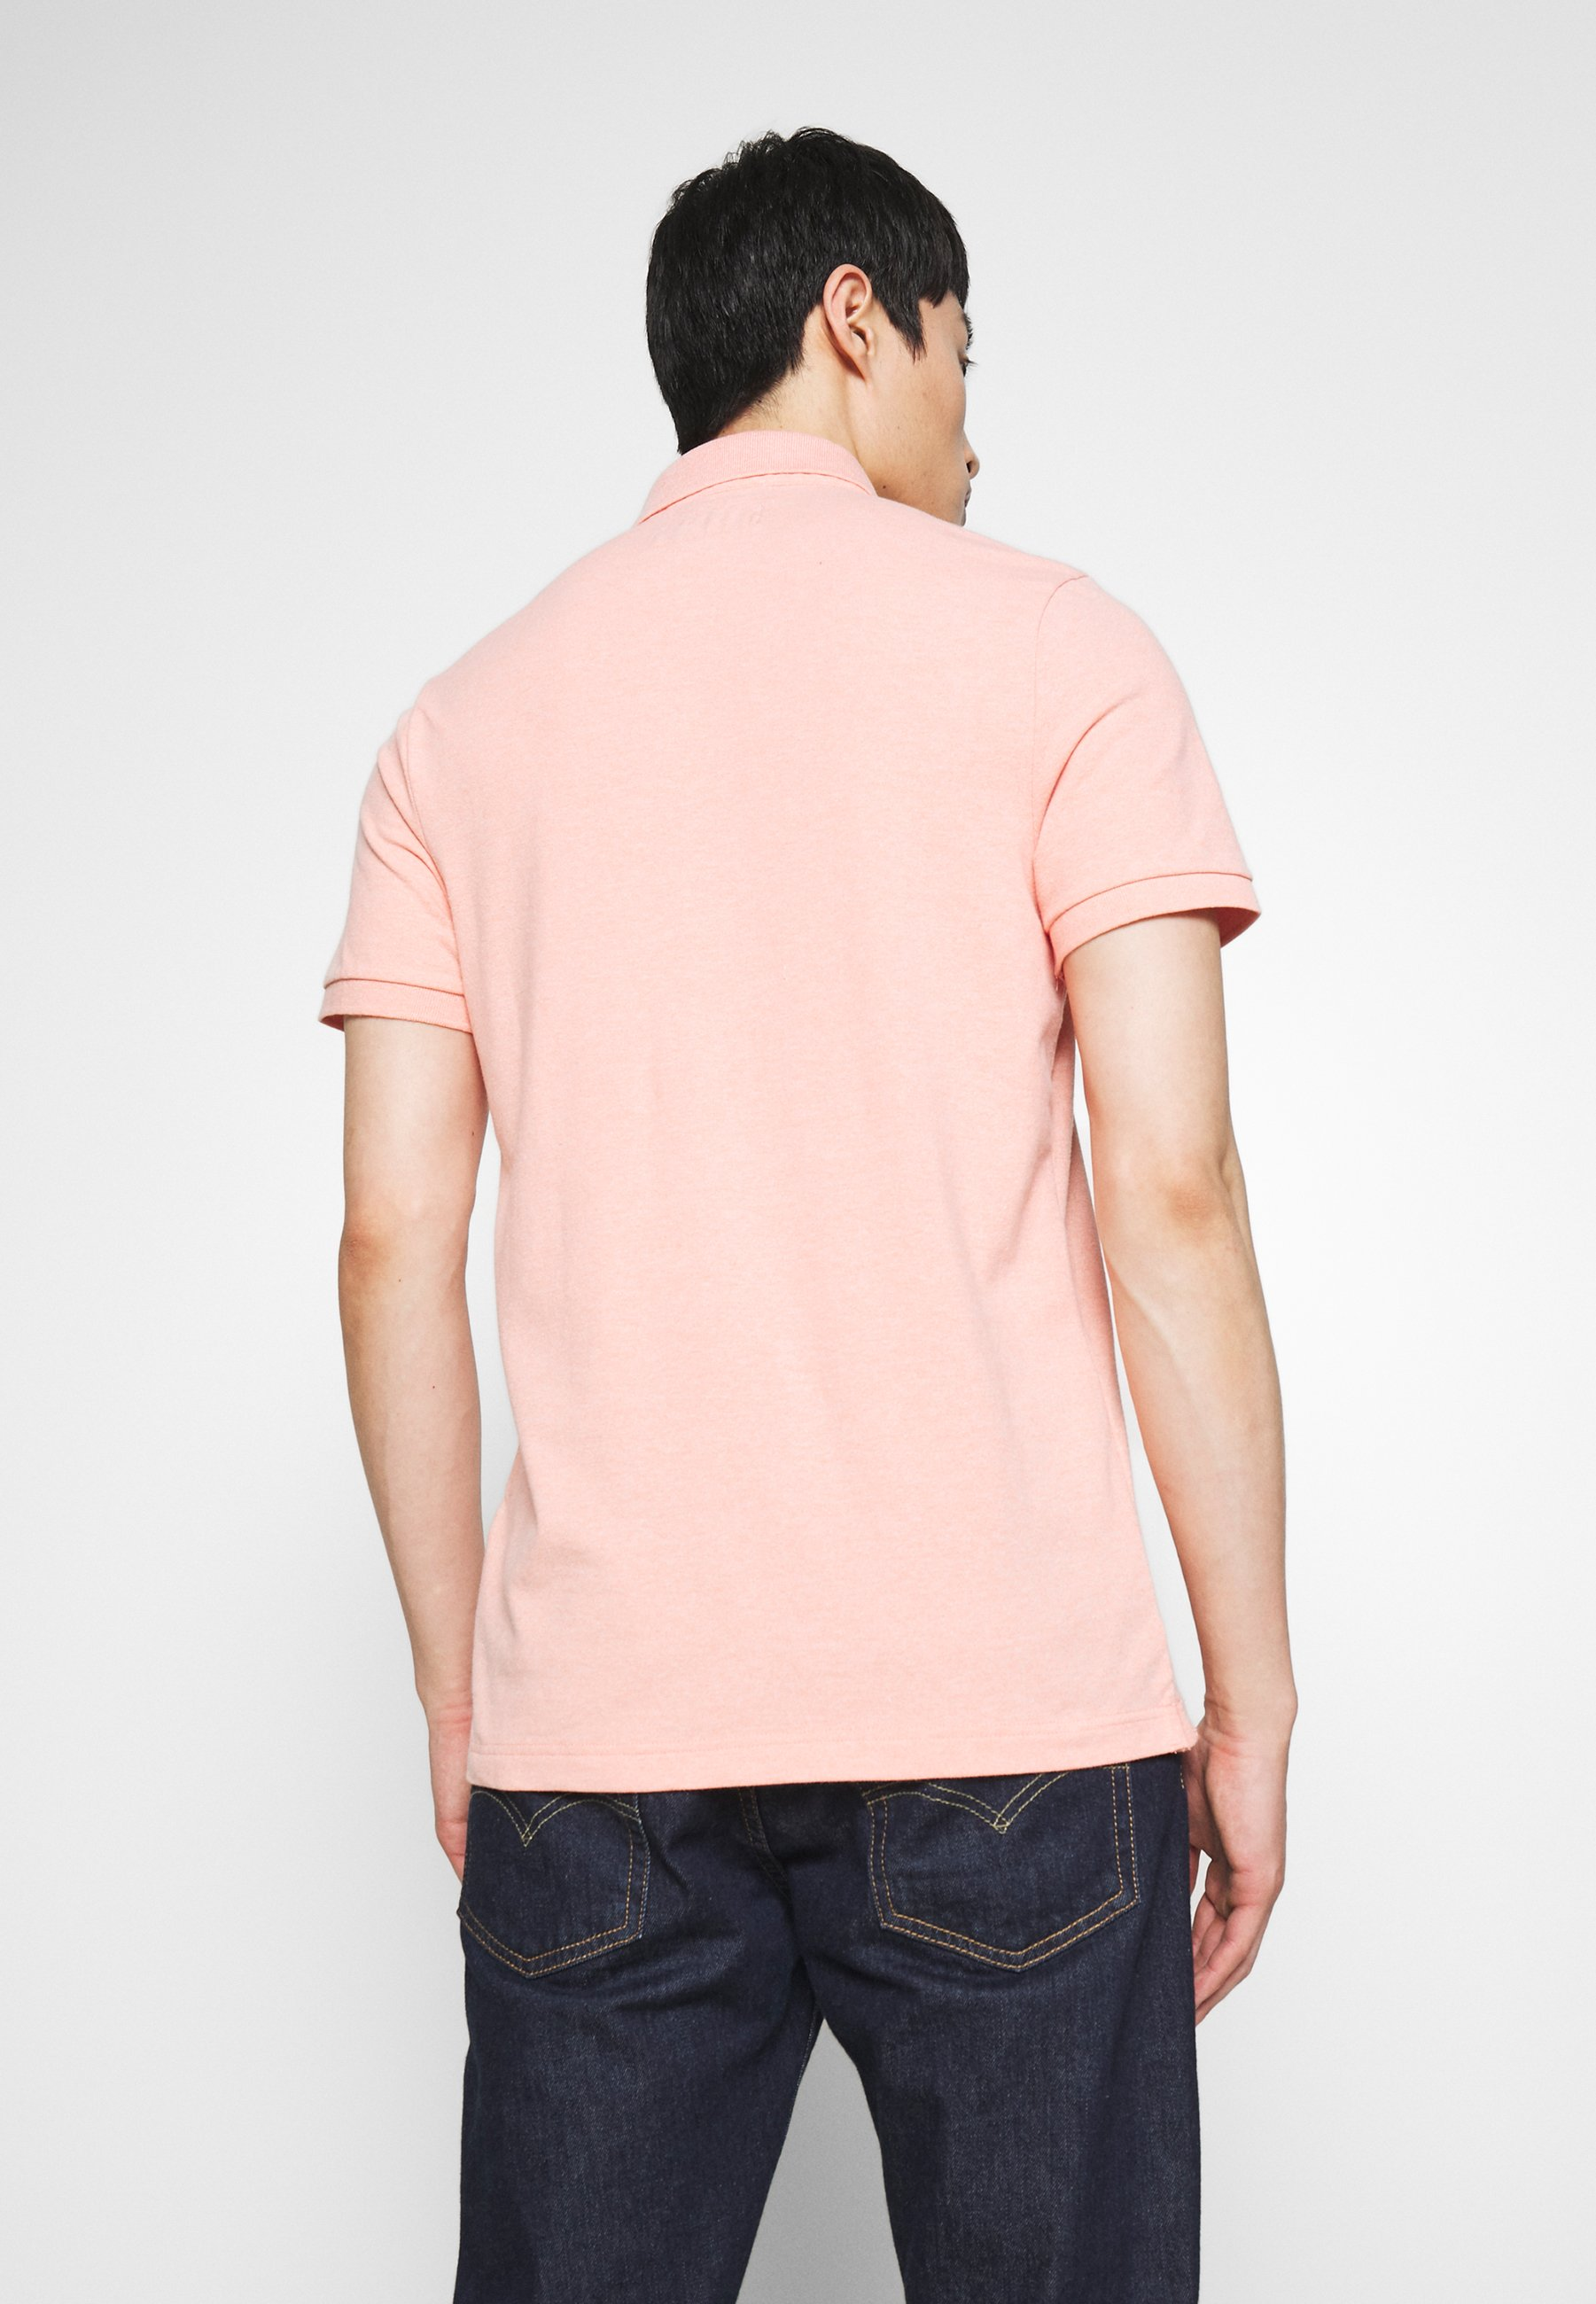 Abercrombie & Fitch Polo - coral siro